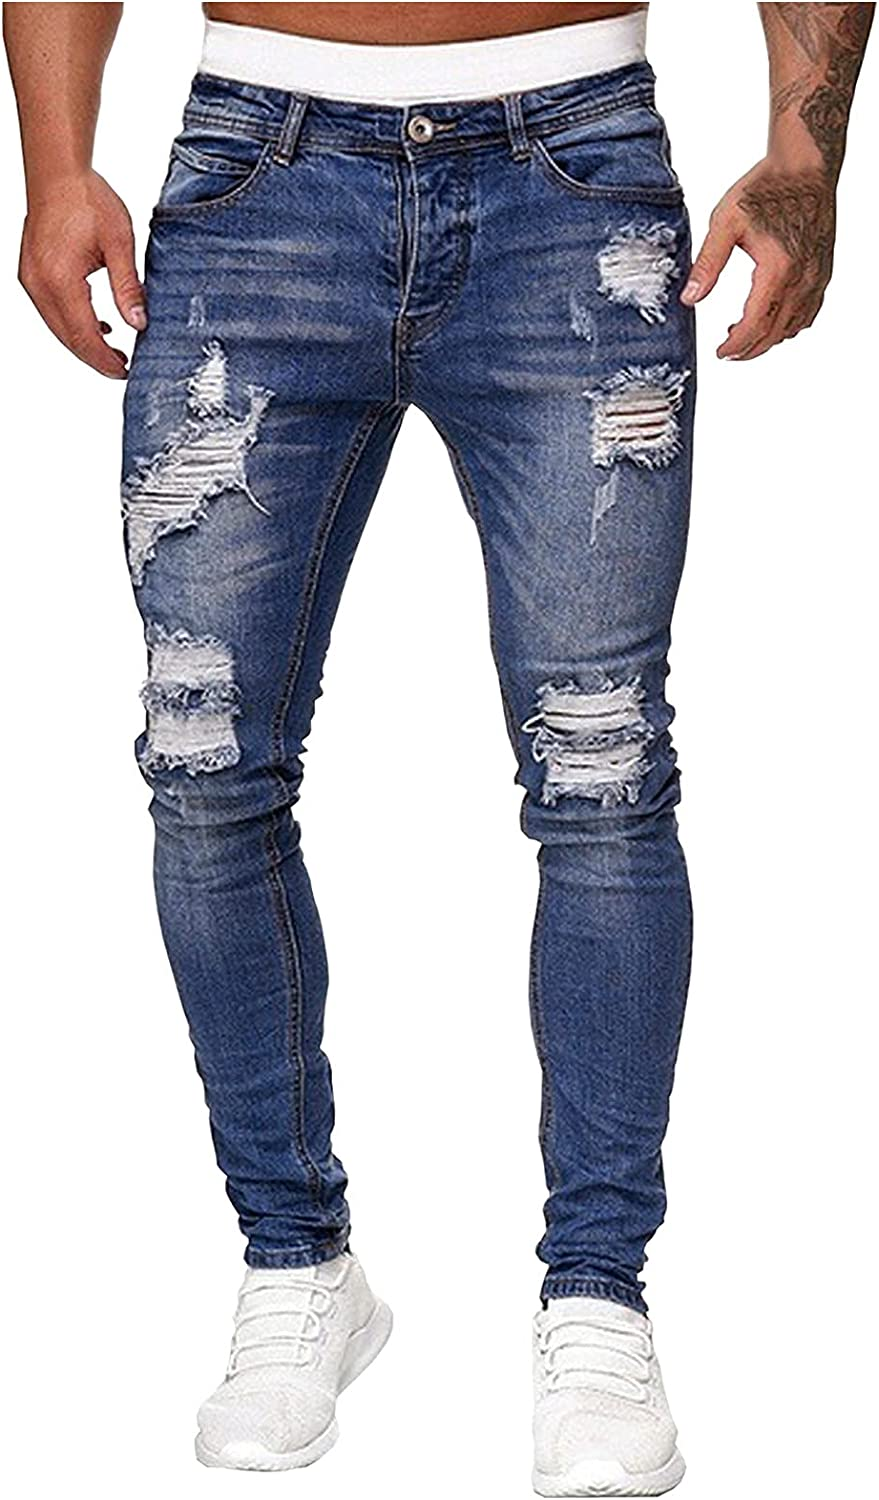 WUAI-Men Ripped Skinny Jeans Vintage Distressed Destroyed Slim Fit Stretch Biker Tapered Leg Jeans Pants with Holes